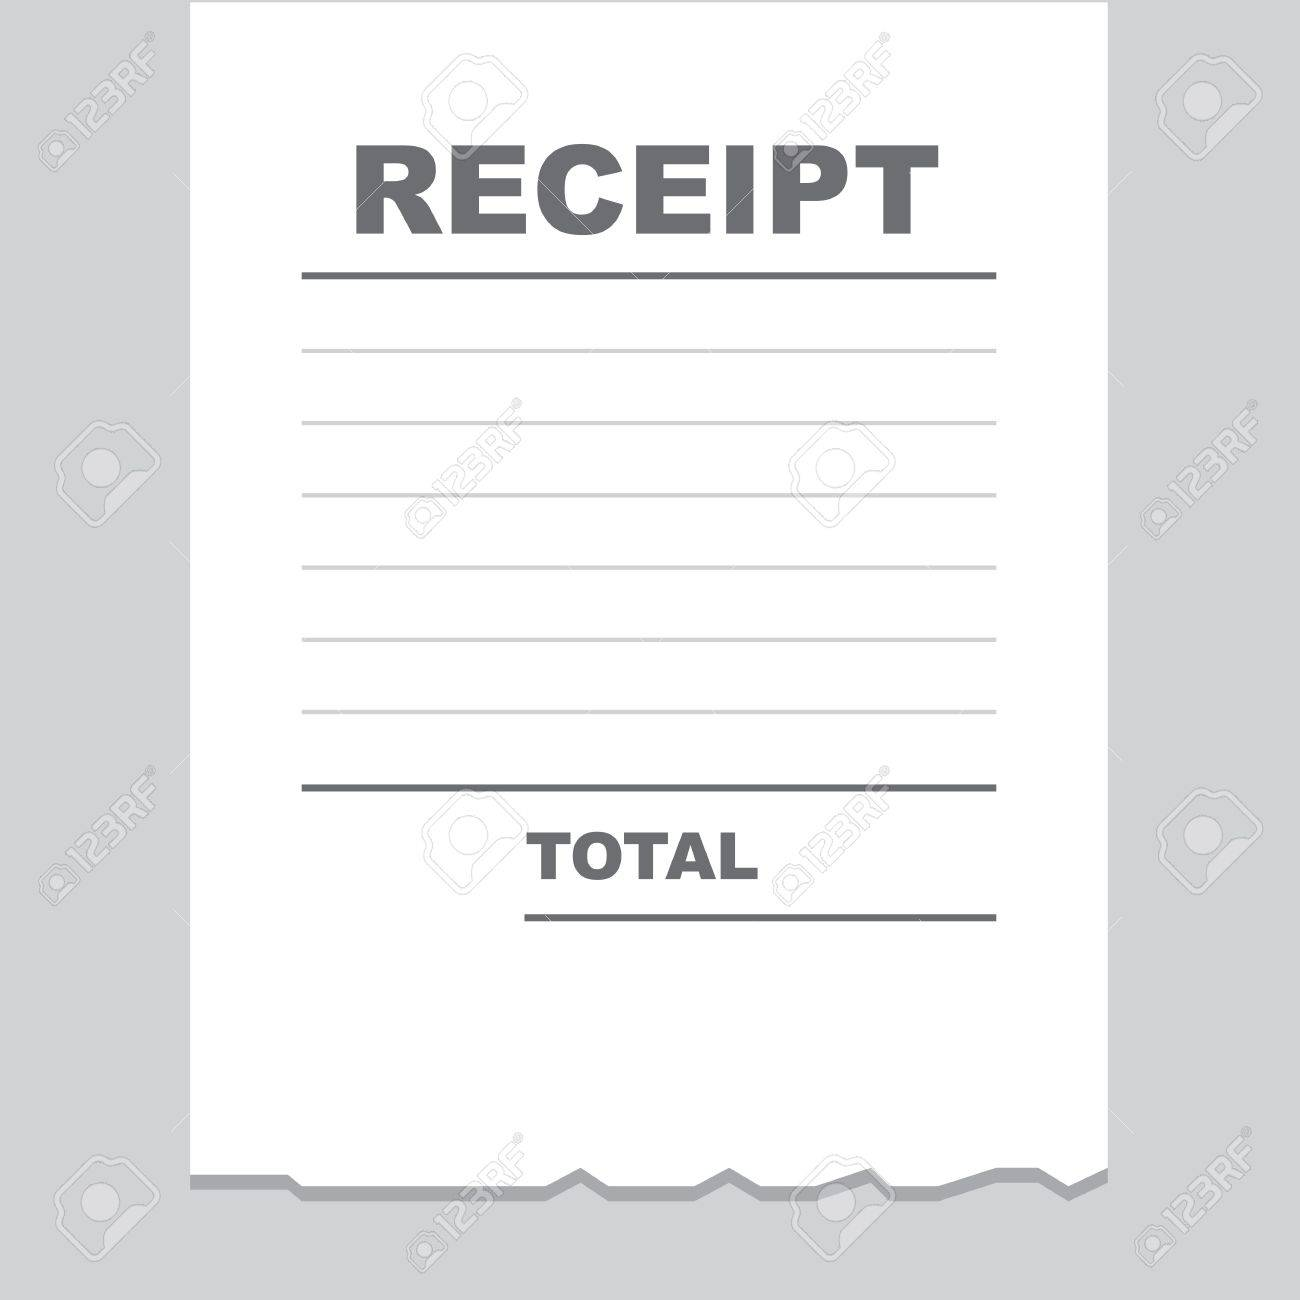 Blank Receipt Printout With Torn Bottom Edge Royalty Free Cliparts – Print a Receipt Free